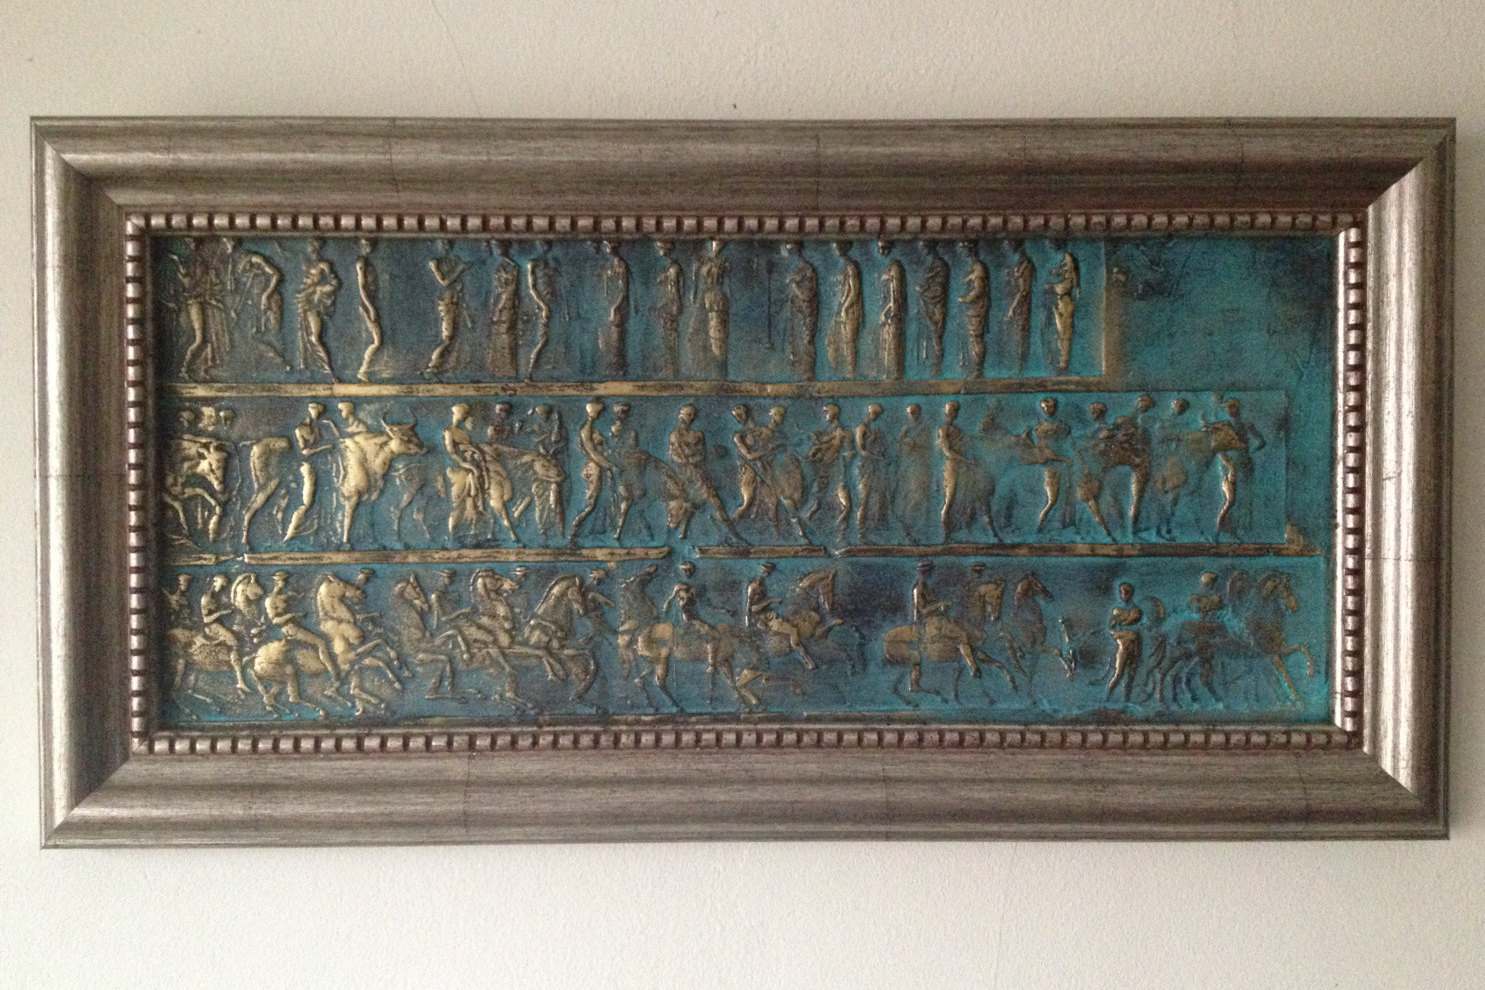 Ancient Wall Decor, Gift For Men, Ancient Wall Art, Sculpture Wall Decor, Universal Gift, Bronze Wall Decor, Sculpture, Wall Decor, Art Inside Metal Universal Wall Decor (View 9 of 30)